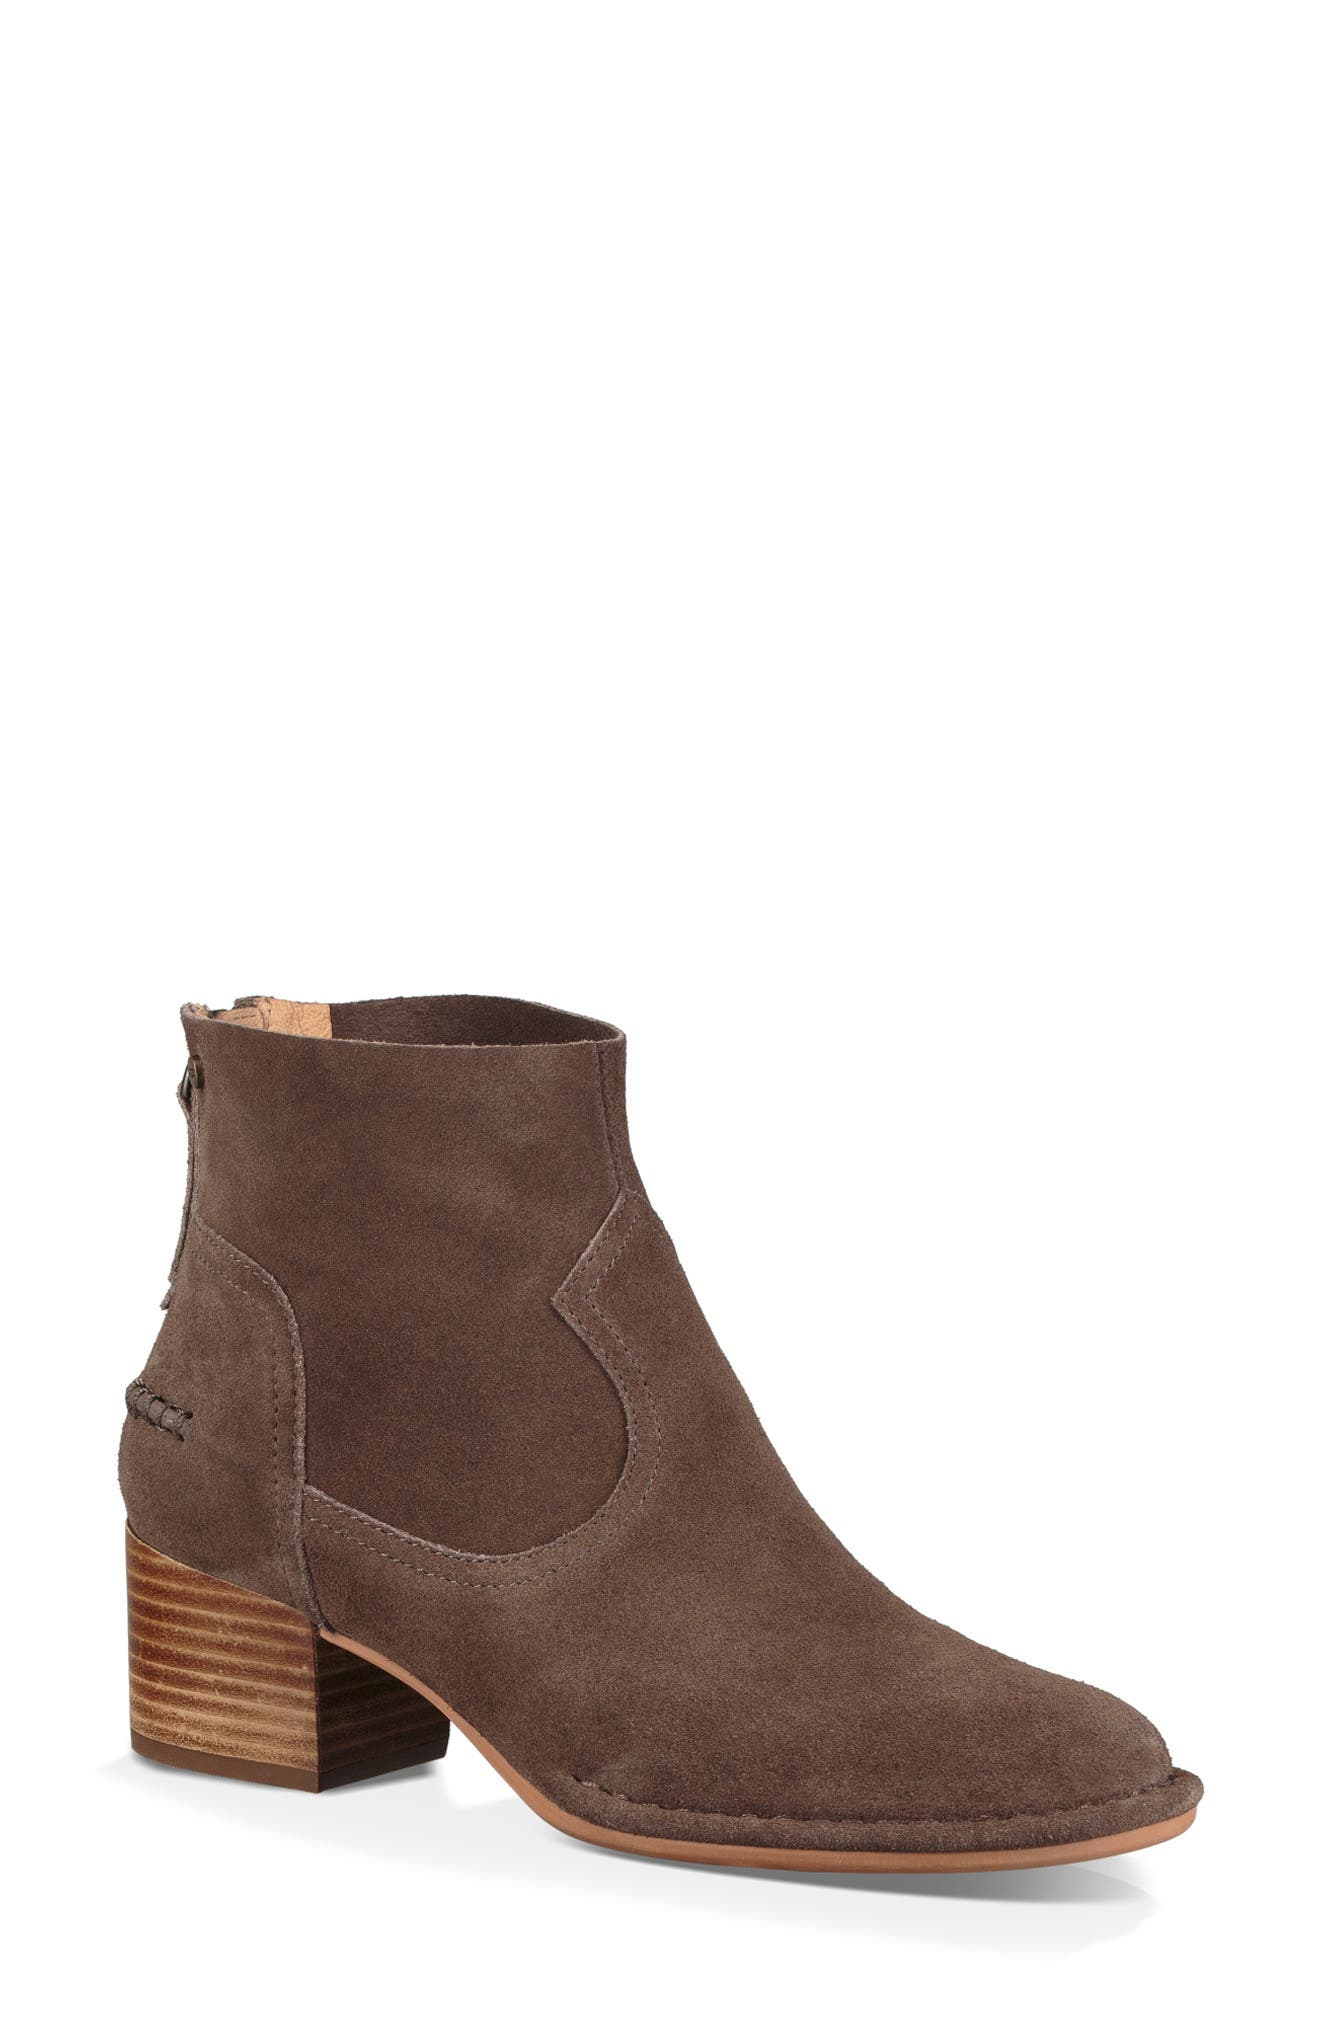 Bandera Bootie,                         Main,                         color, MYSTERIOUS